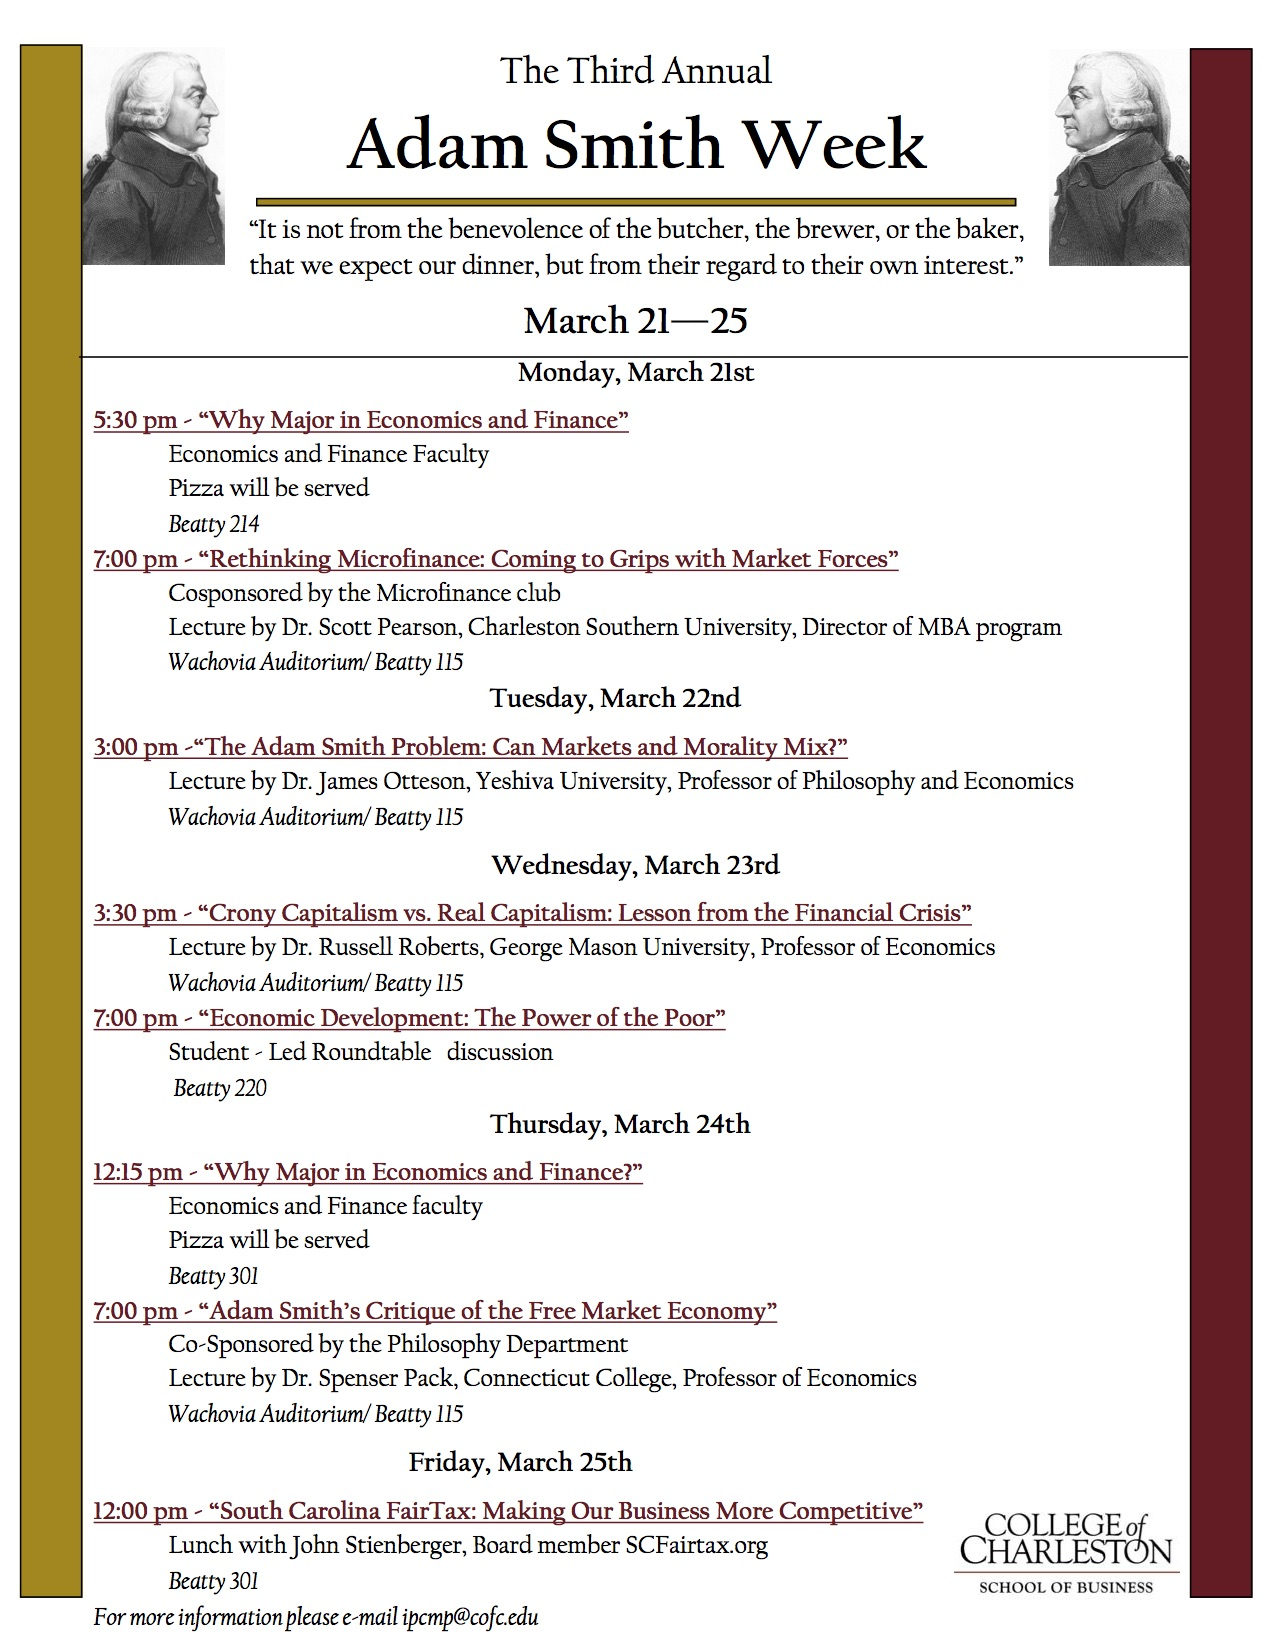 Adam Smith Week - College of Charleston